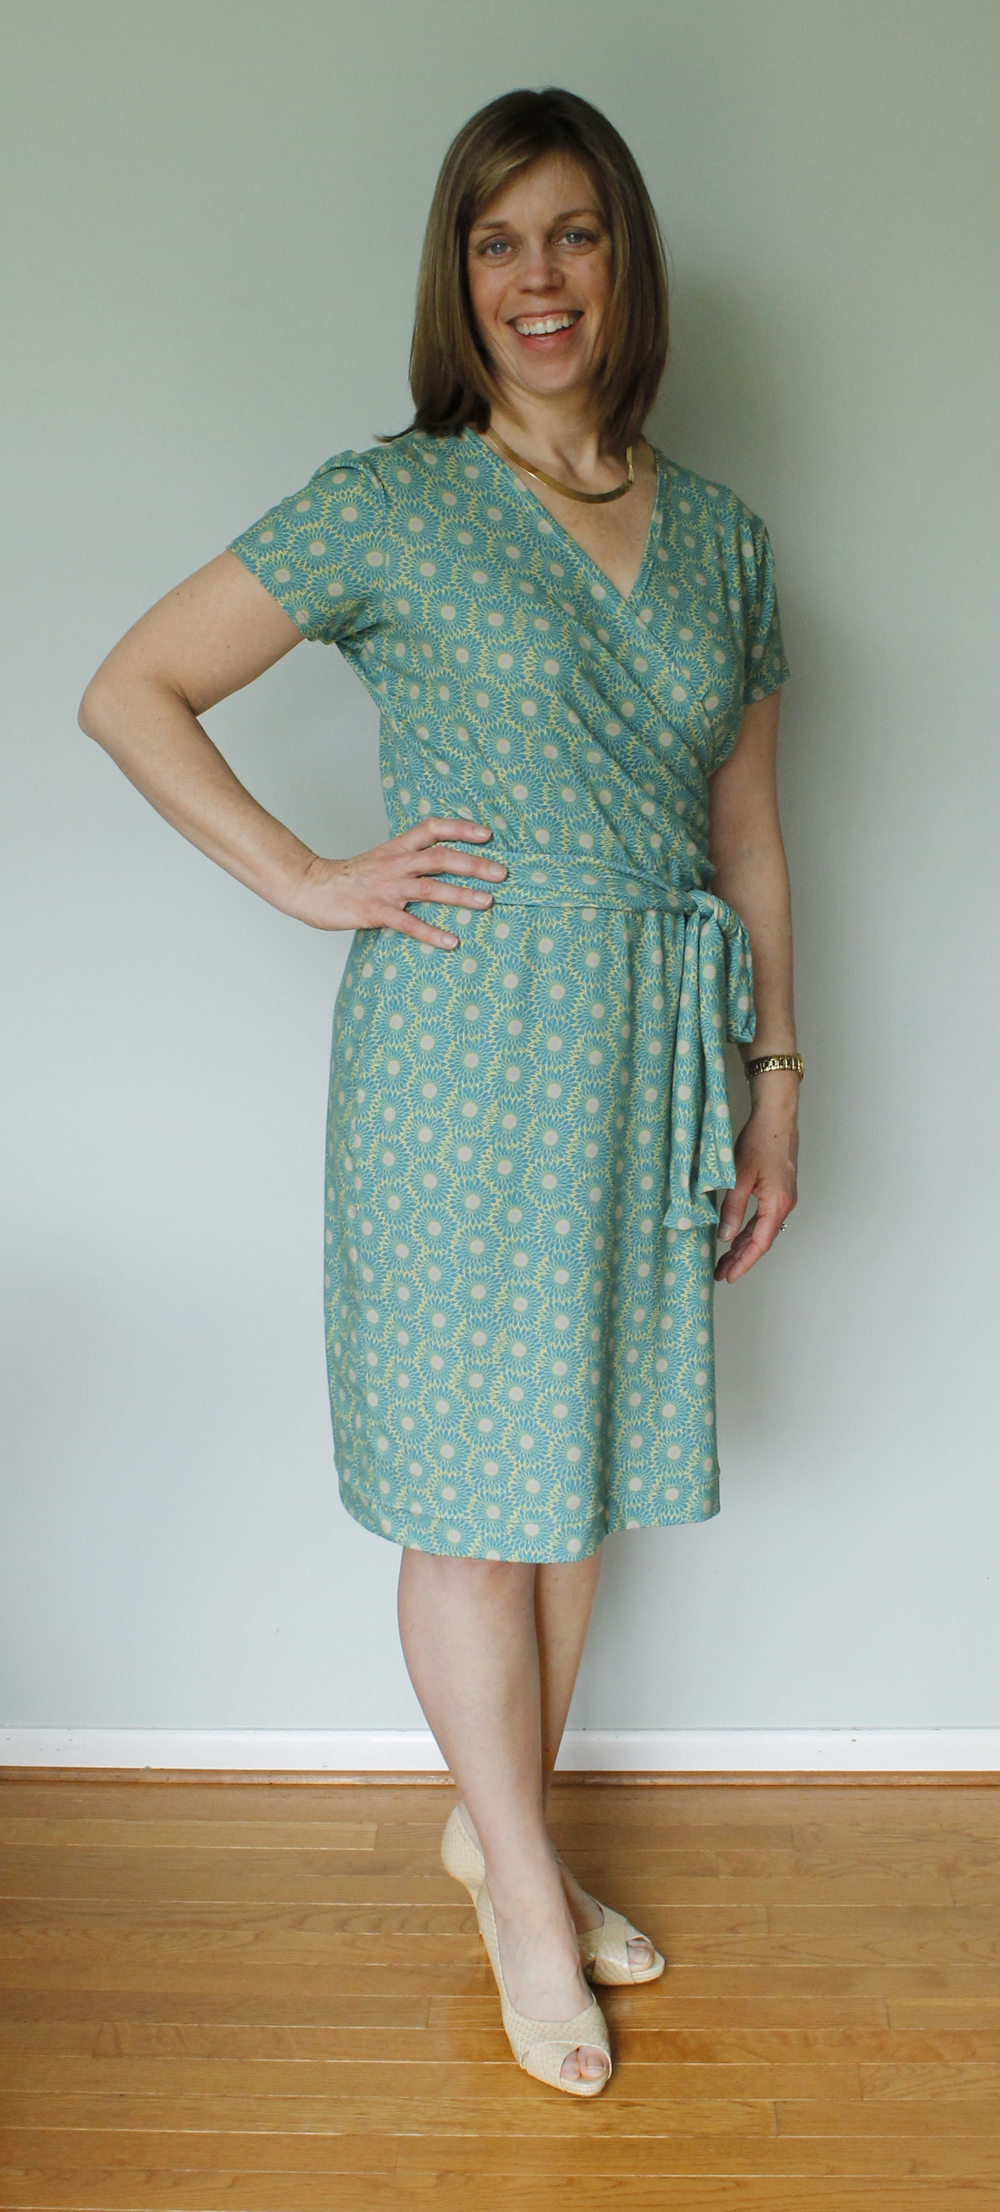 Beautiful Beth in her wrap dress.